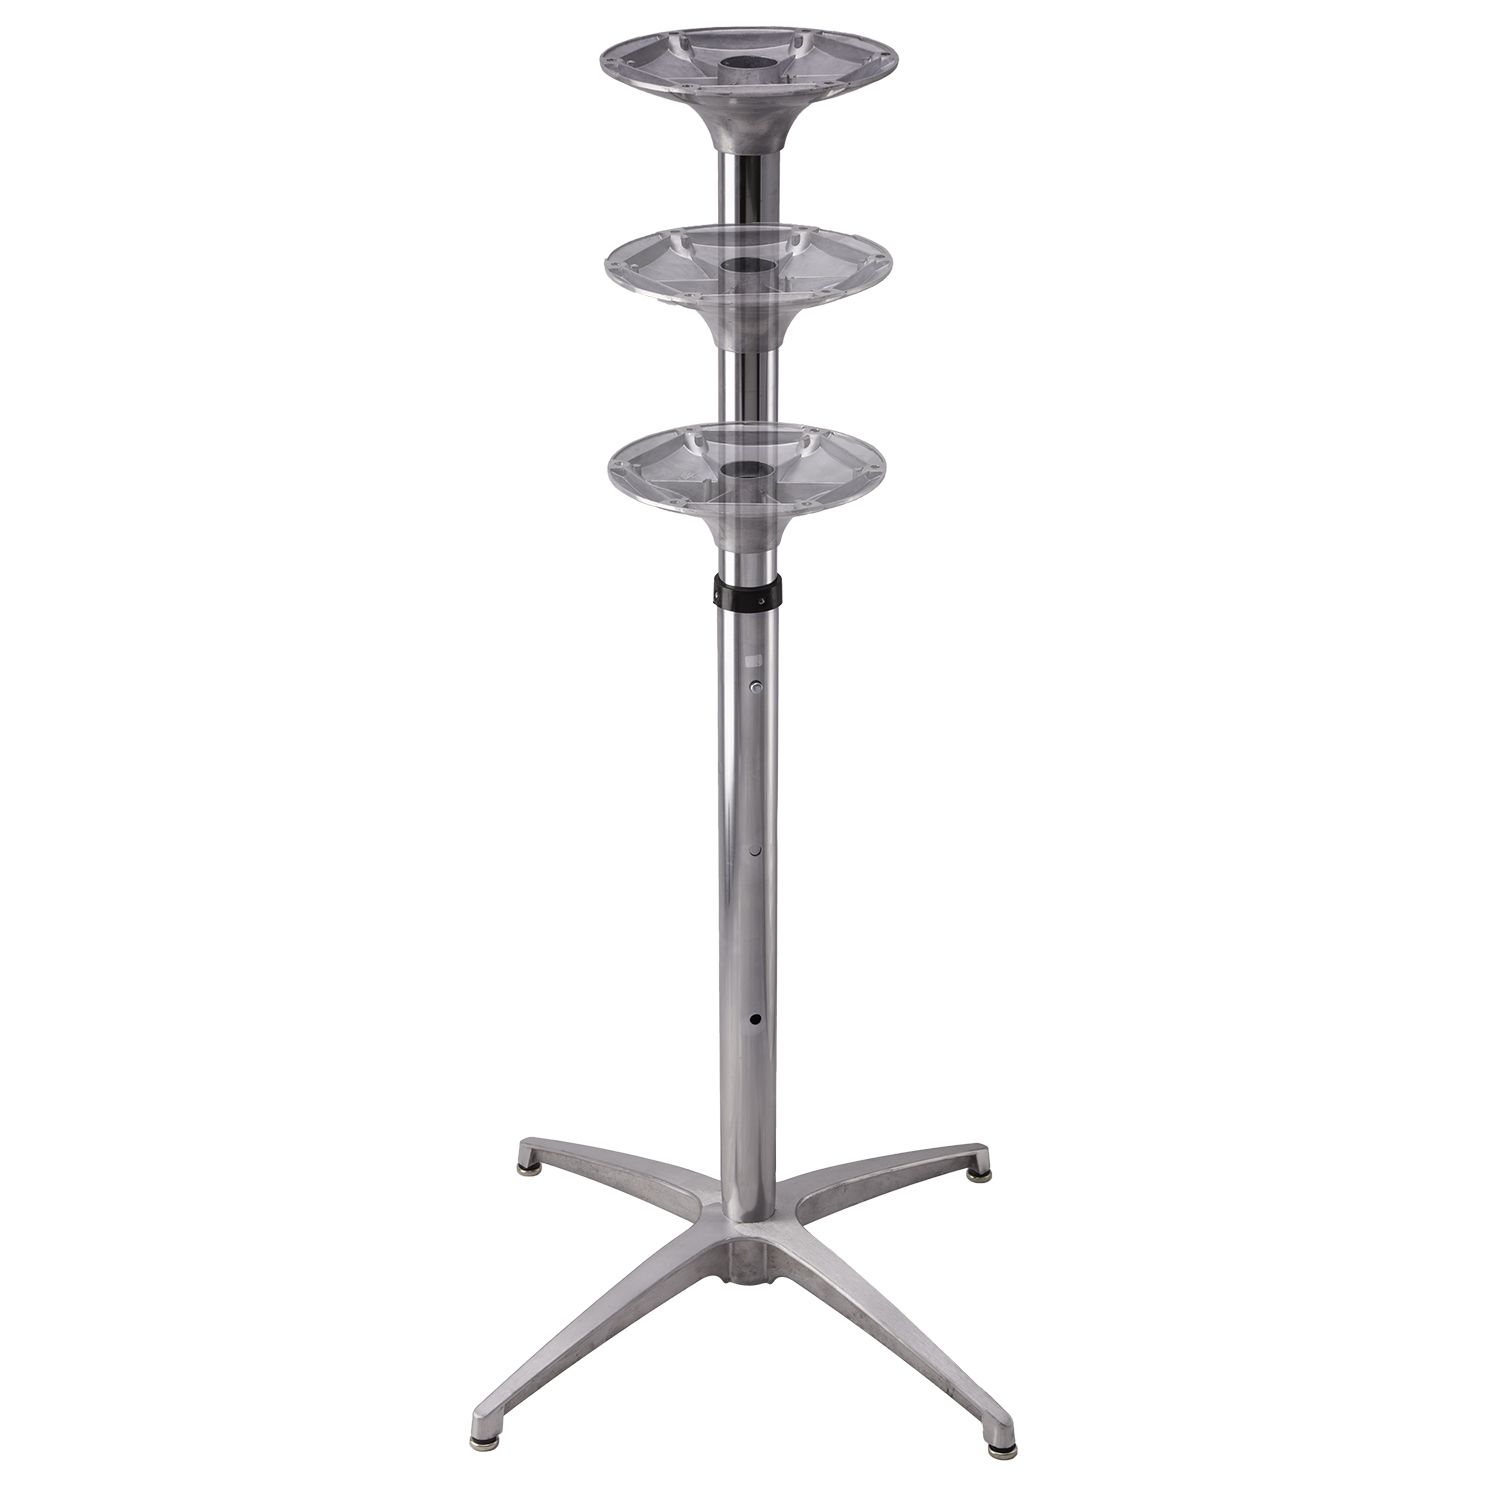 With adjustable height  column